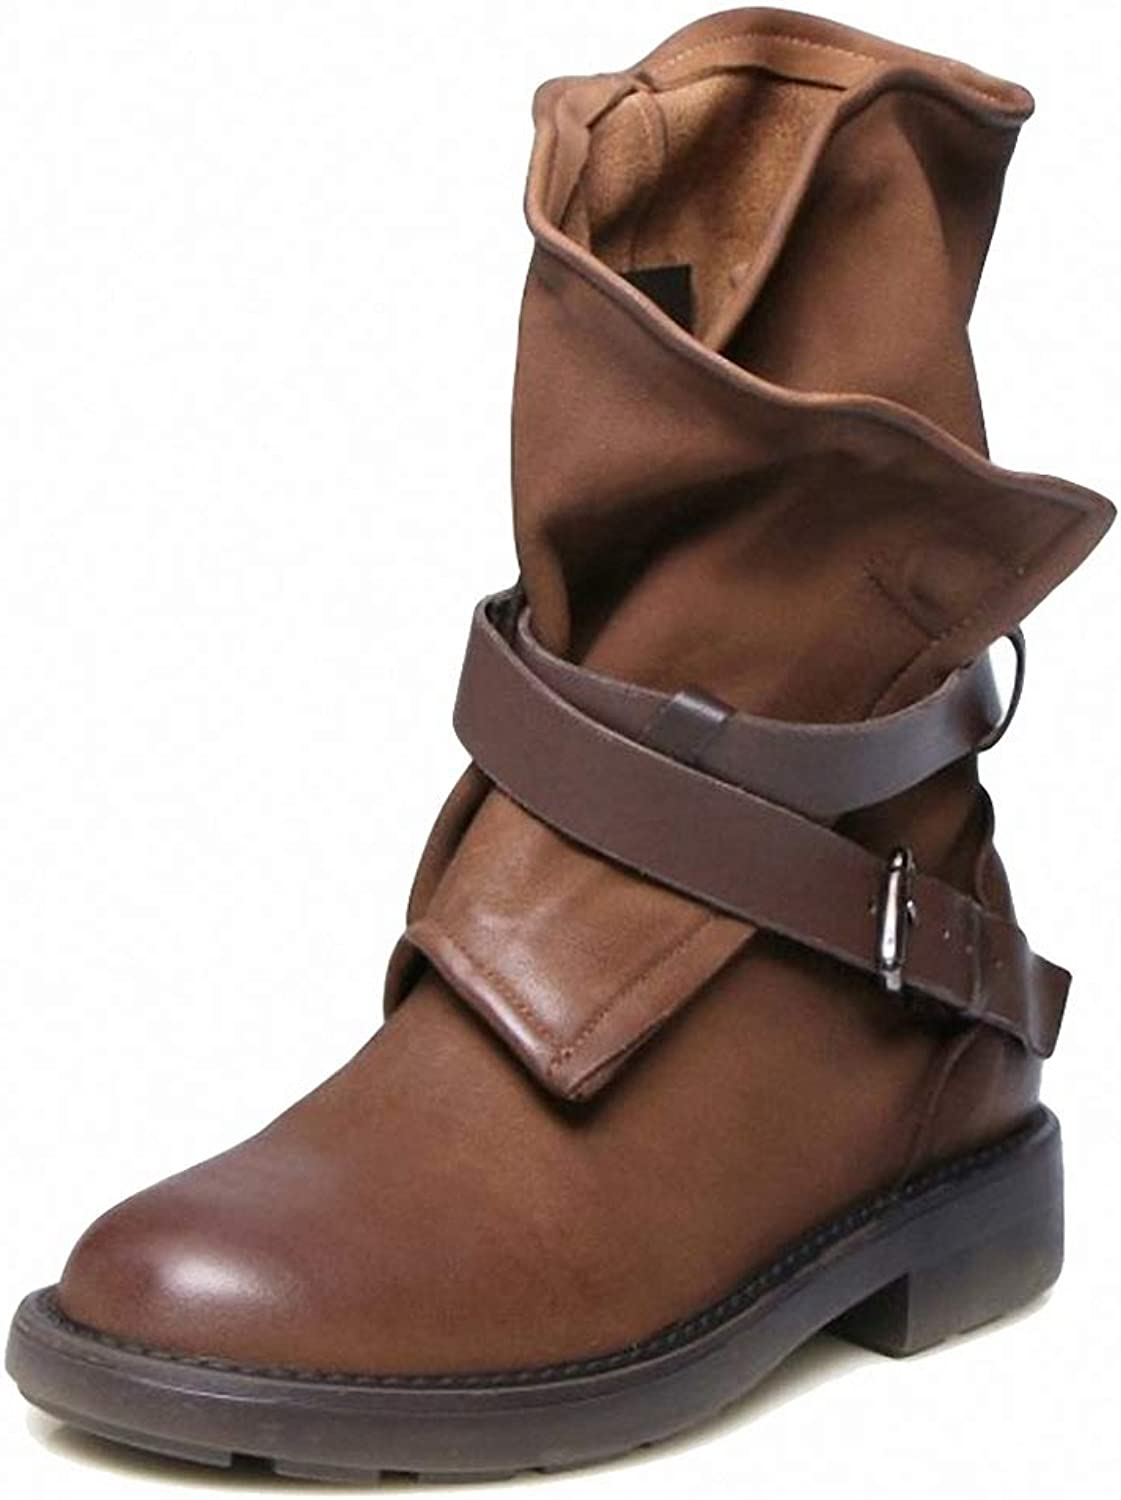 York Zhu Women Boots,Round Toe Buckle Strap Fashion Mid-Calf Boots Brown